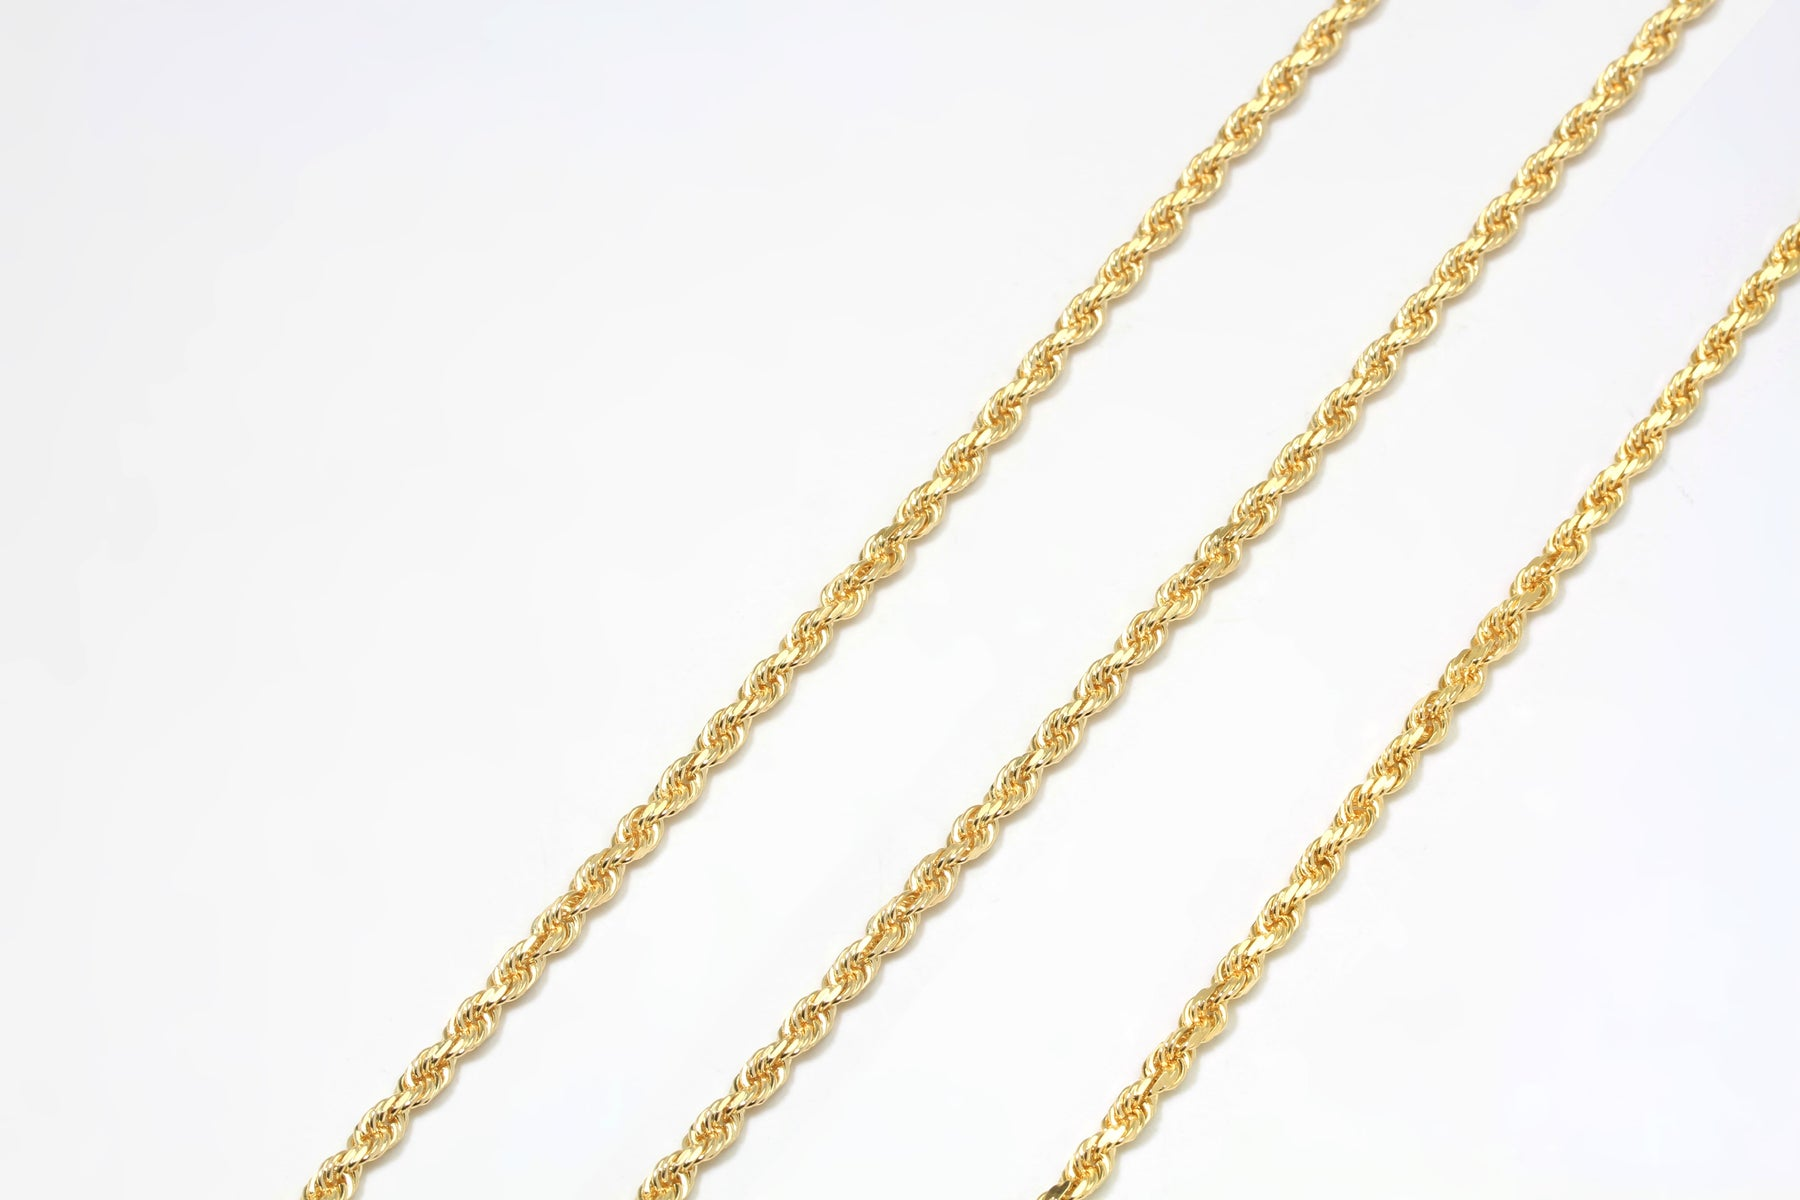 inch in chine of chains length gold different plain watch models